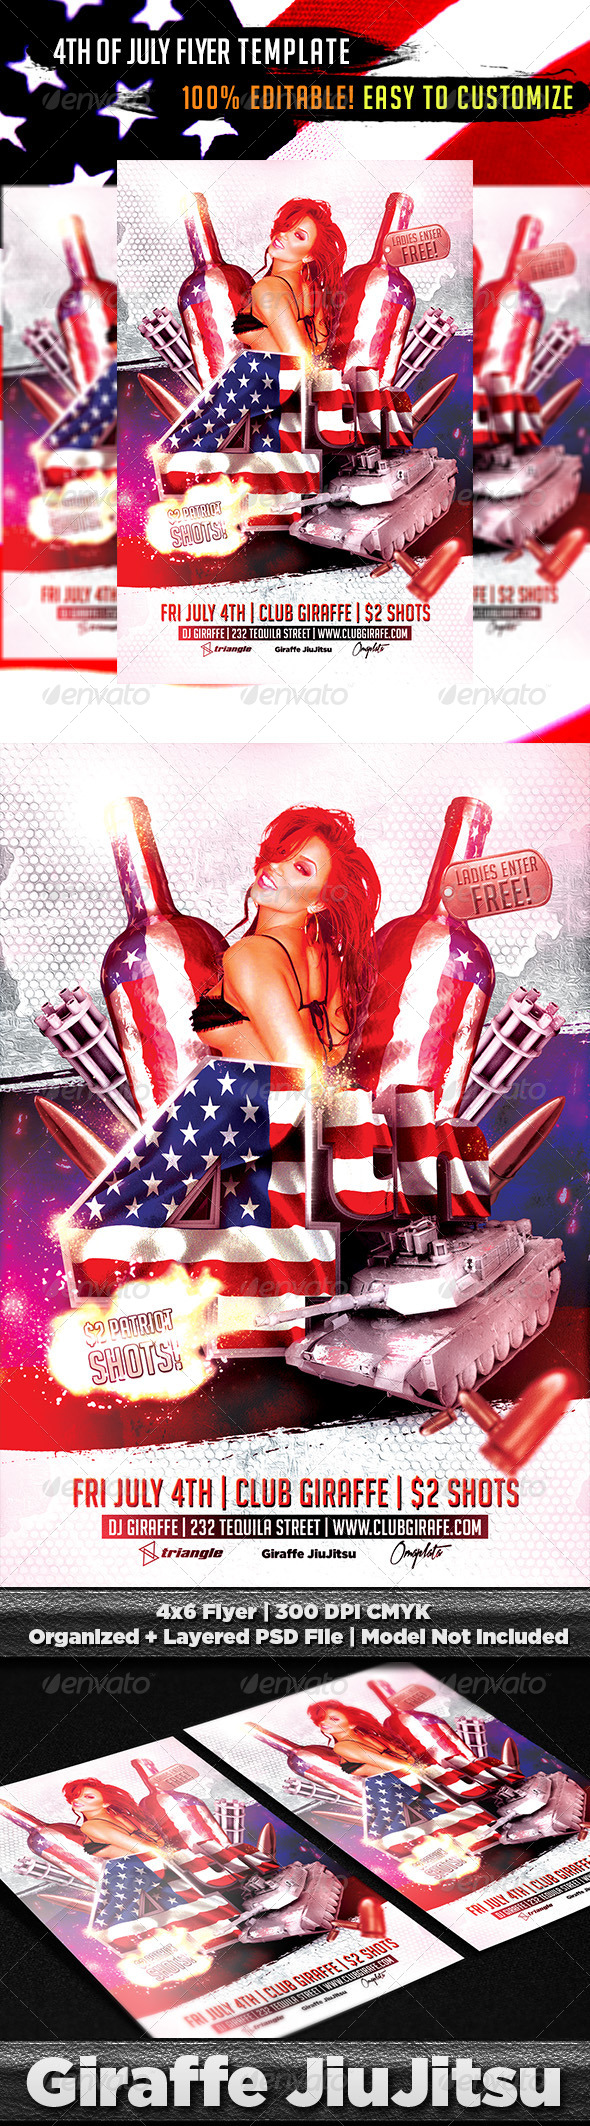 GraphicRiver 4th of July Flyer Template PSD 7585822